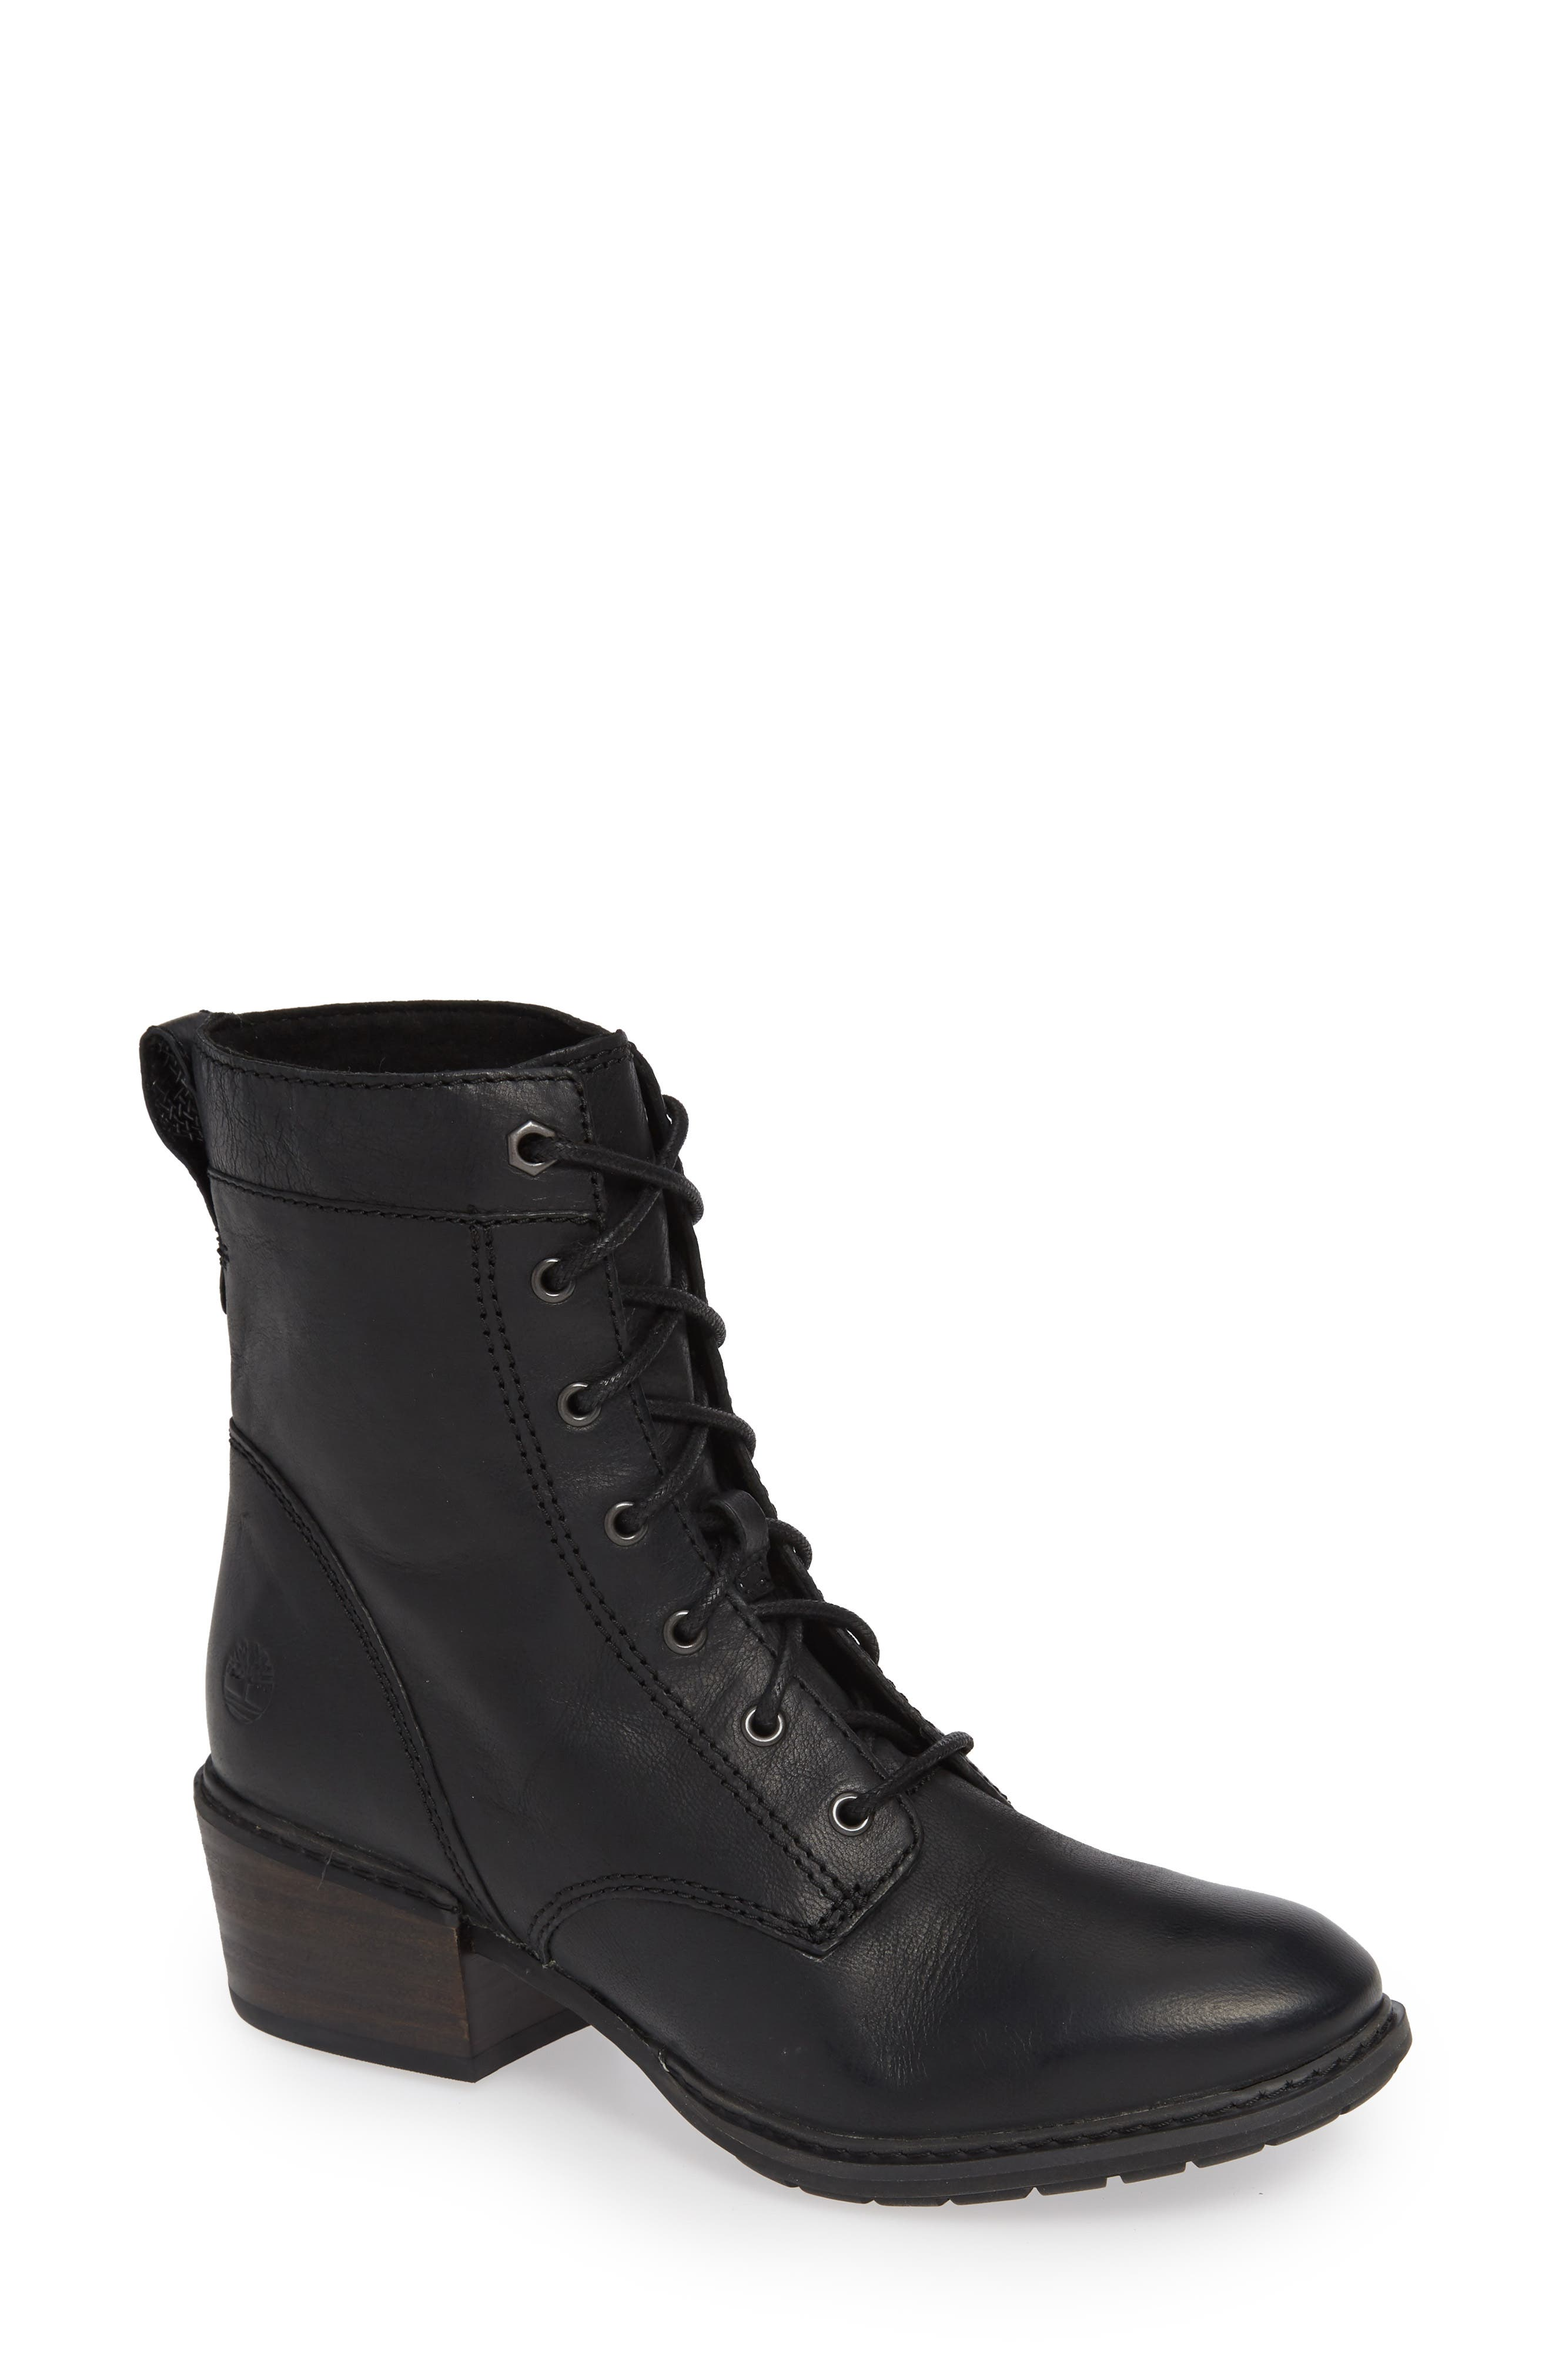 Sutherlin Bay Water Resistant Lace-Up Bootie,                             Main thumbnail 1, color,                             JET BLACK LEATHER